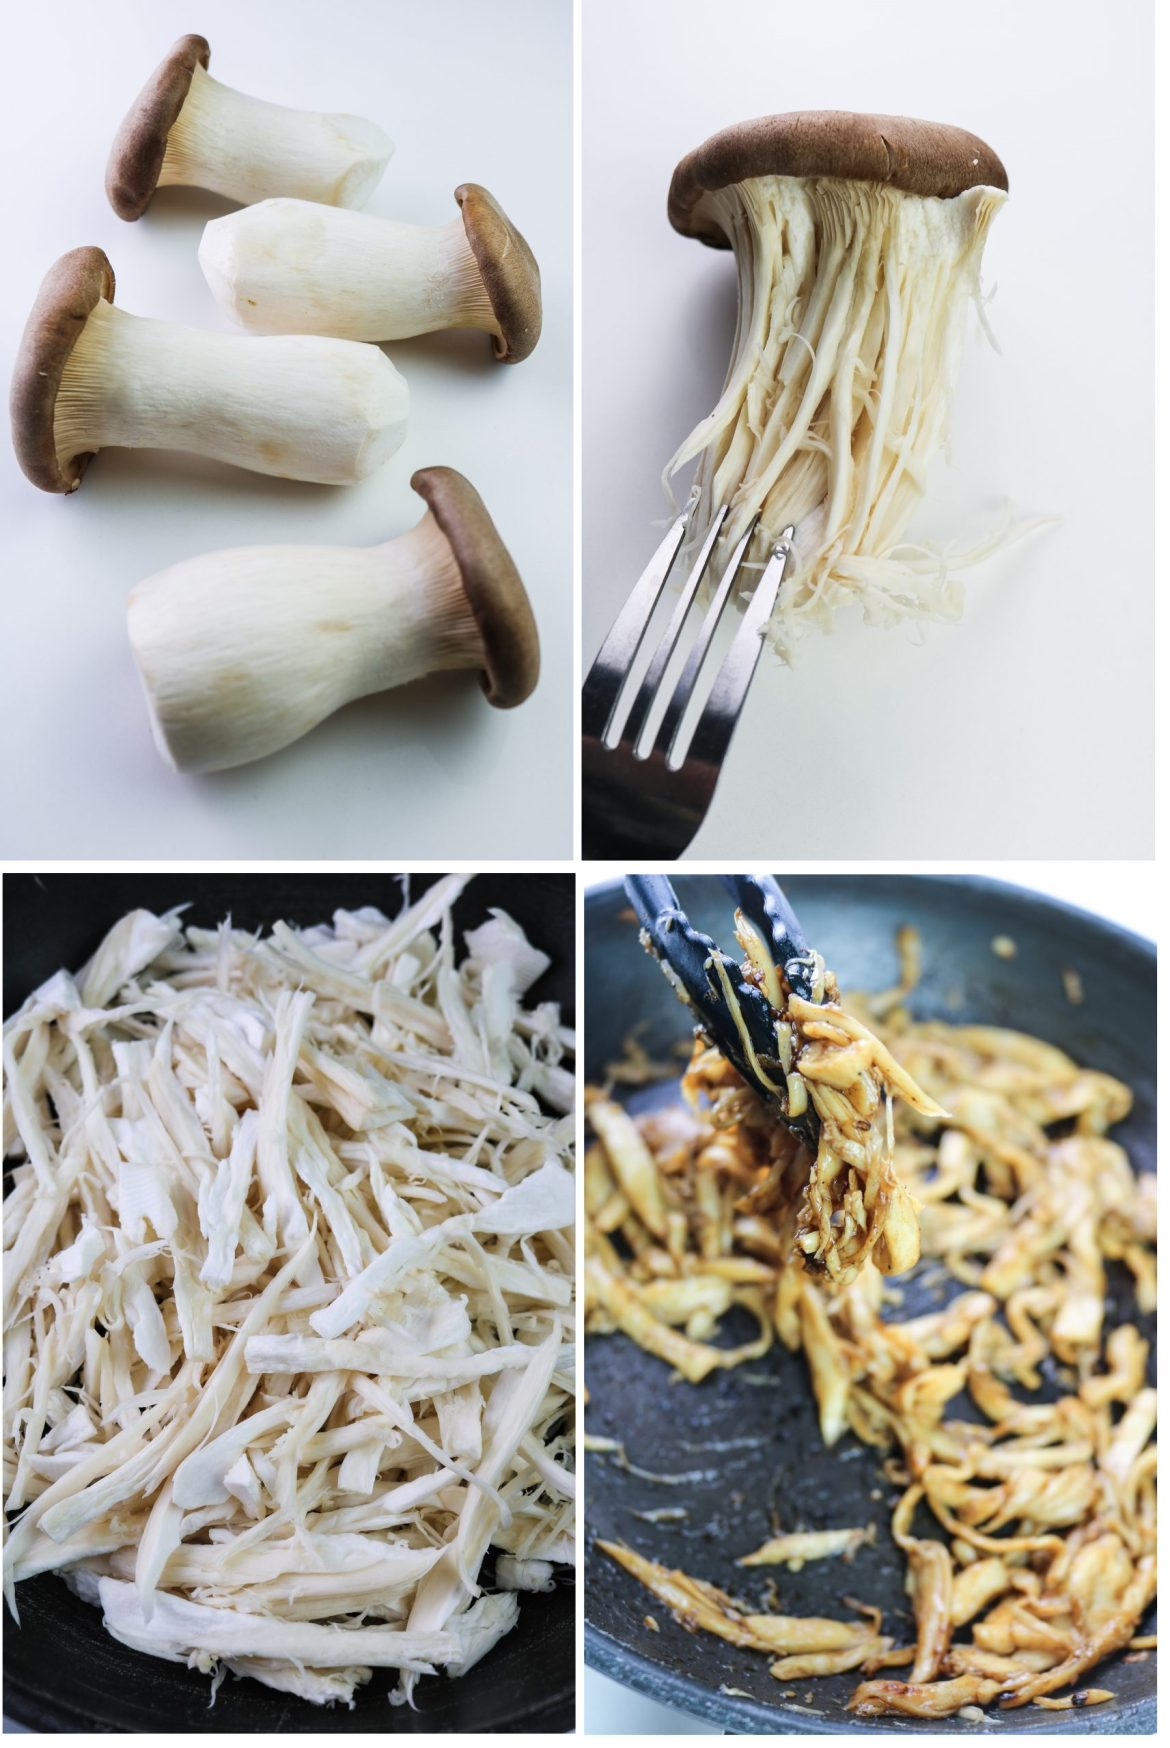 steps to prepare the king oyster mushrooms shreds